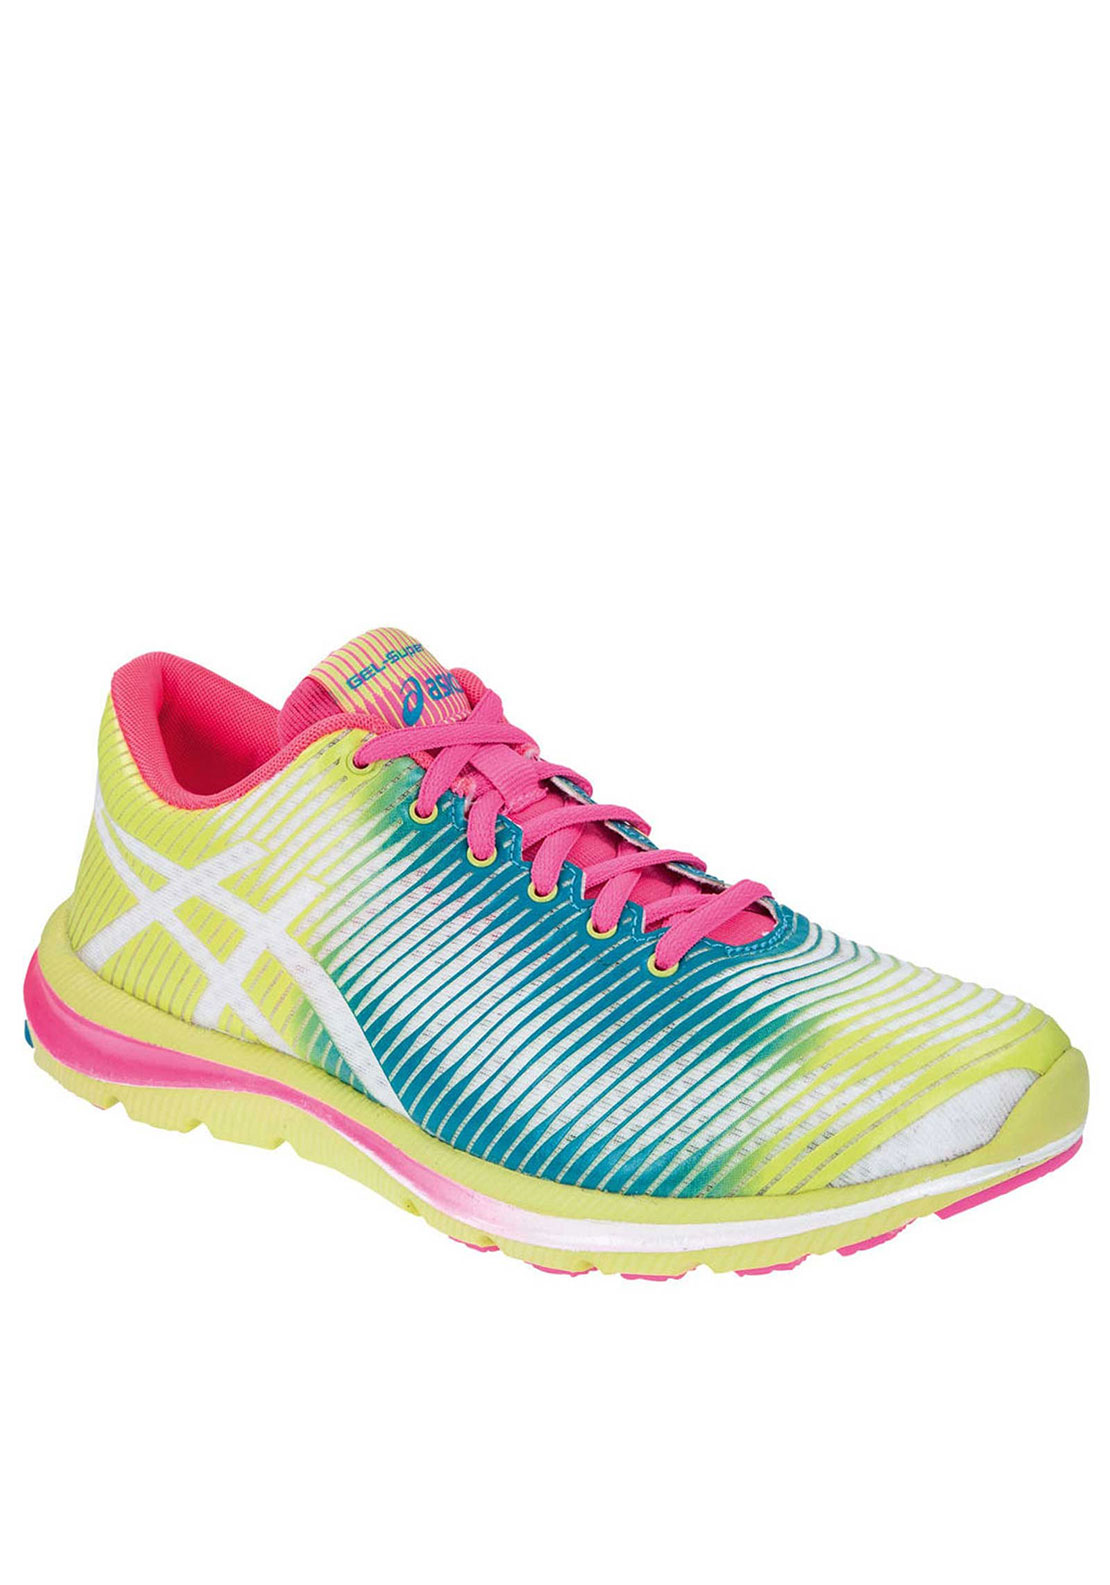 Asics Women's Gel-Super J33, Yellow